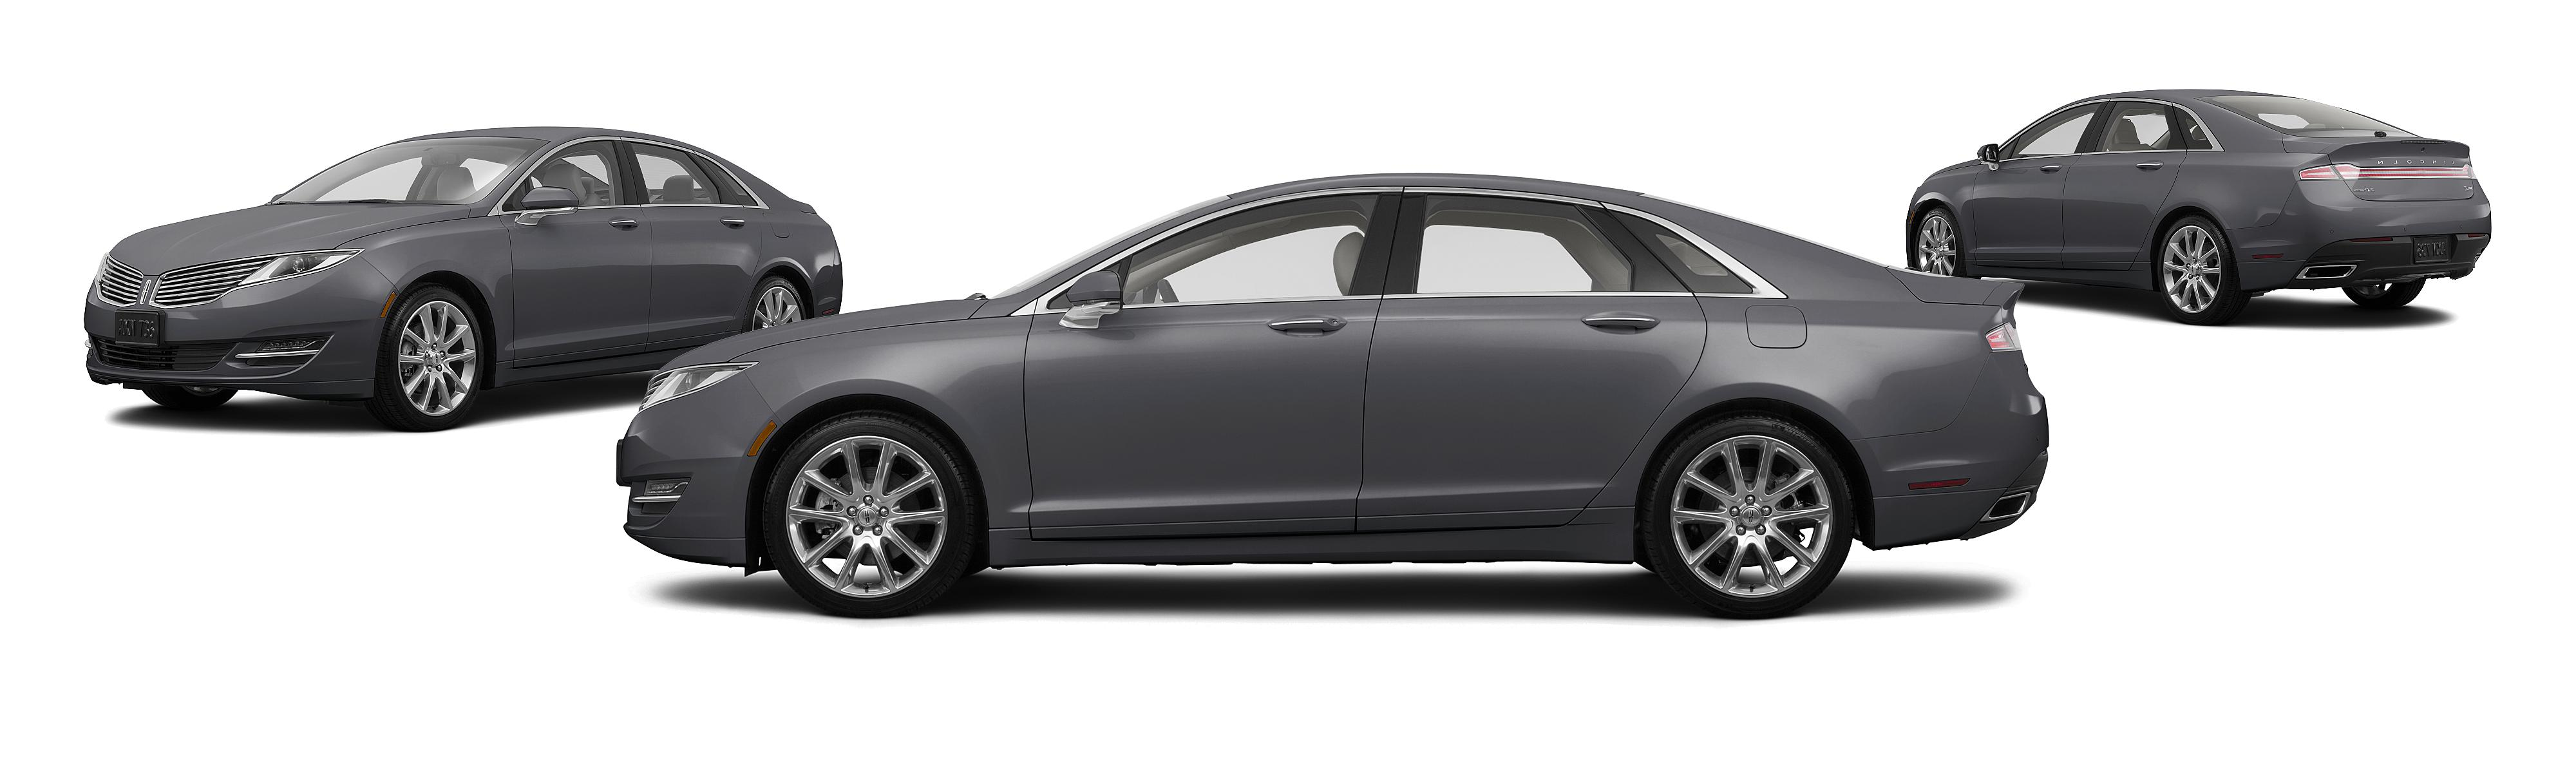 black a review mkz makes fusion lincoln want reserve hybrid me label